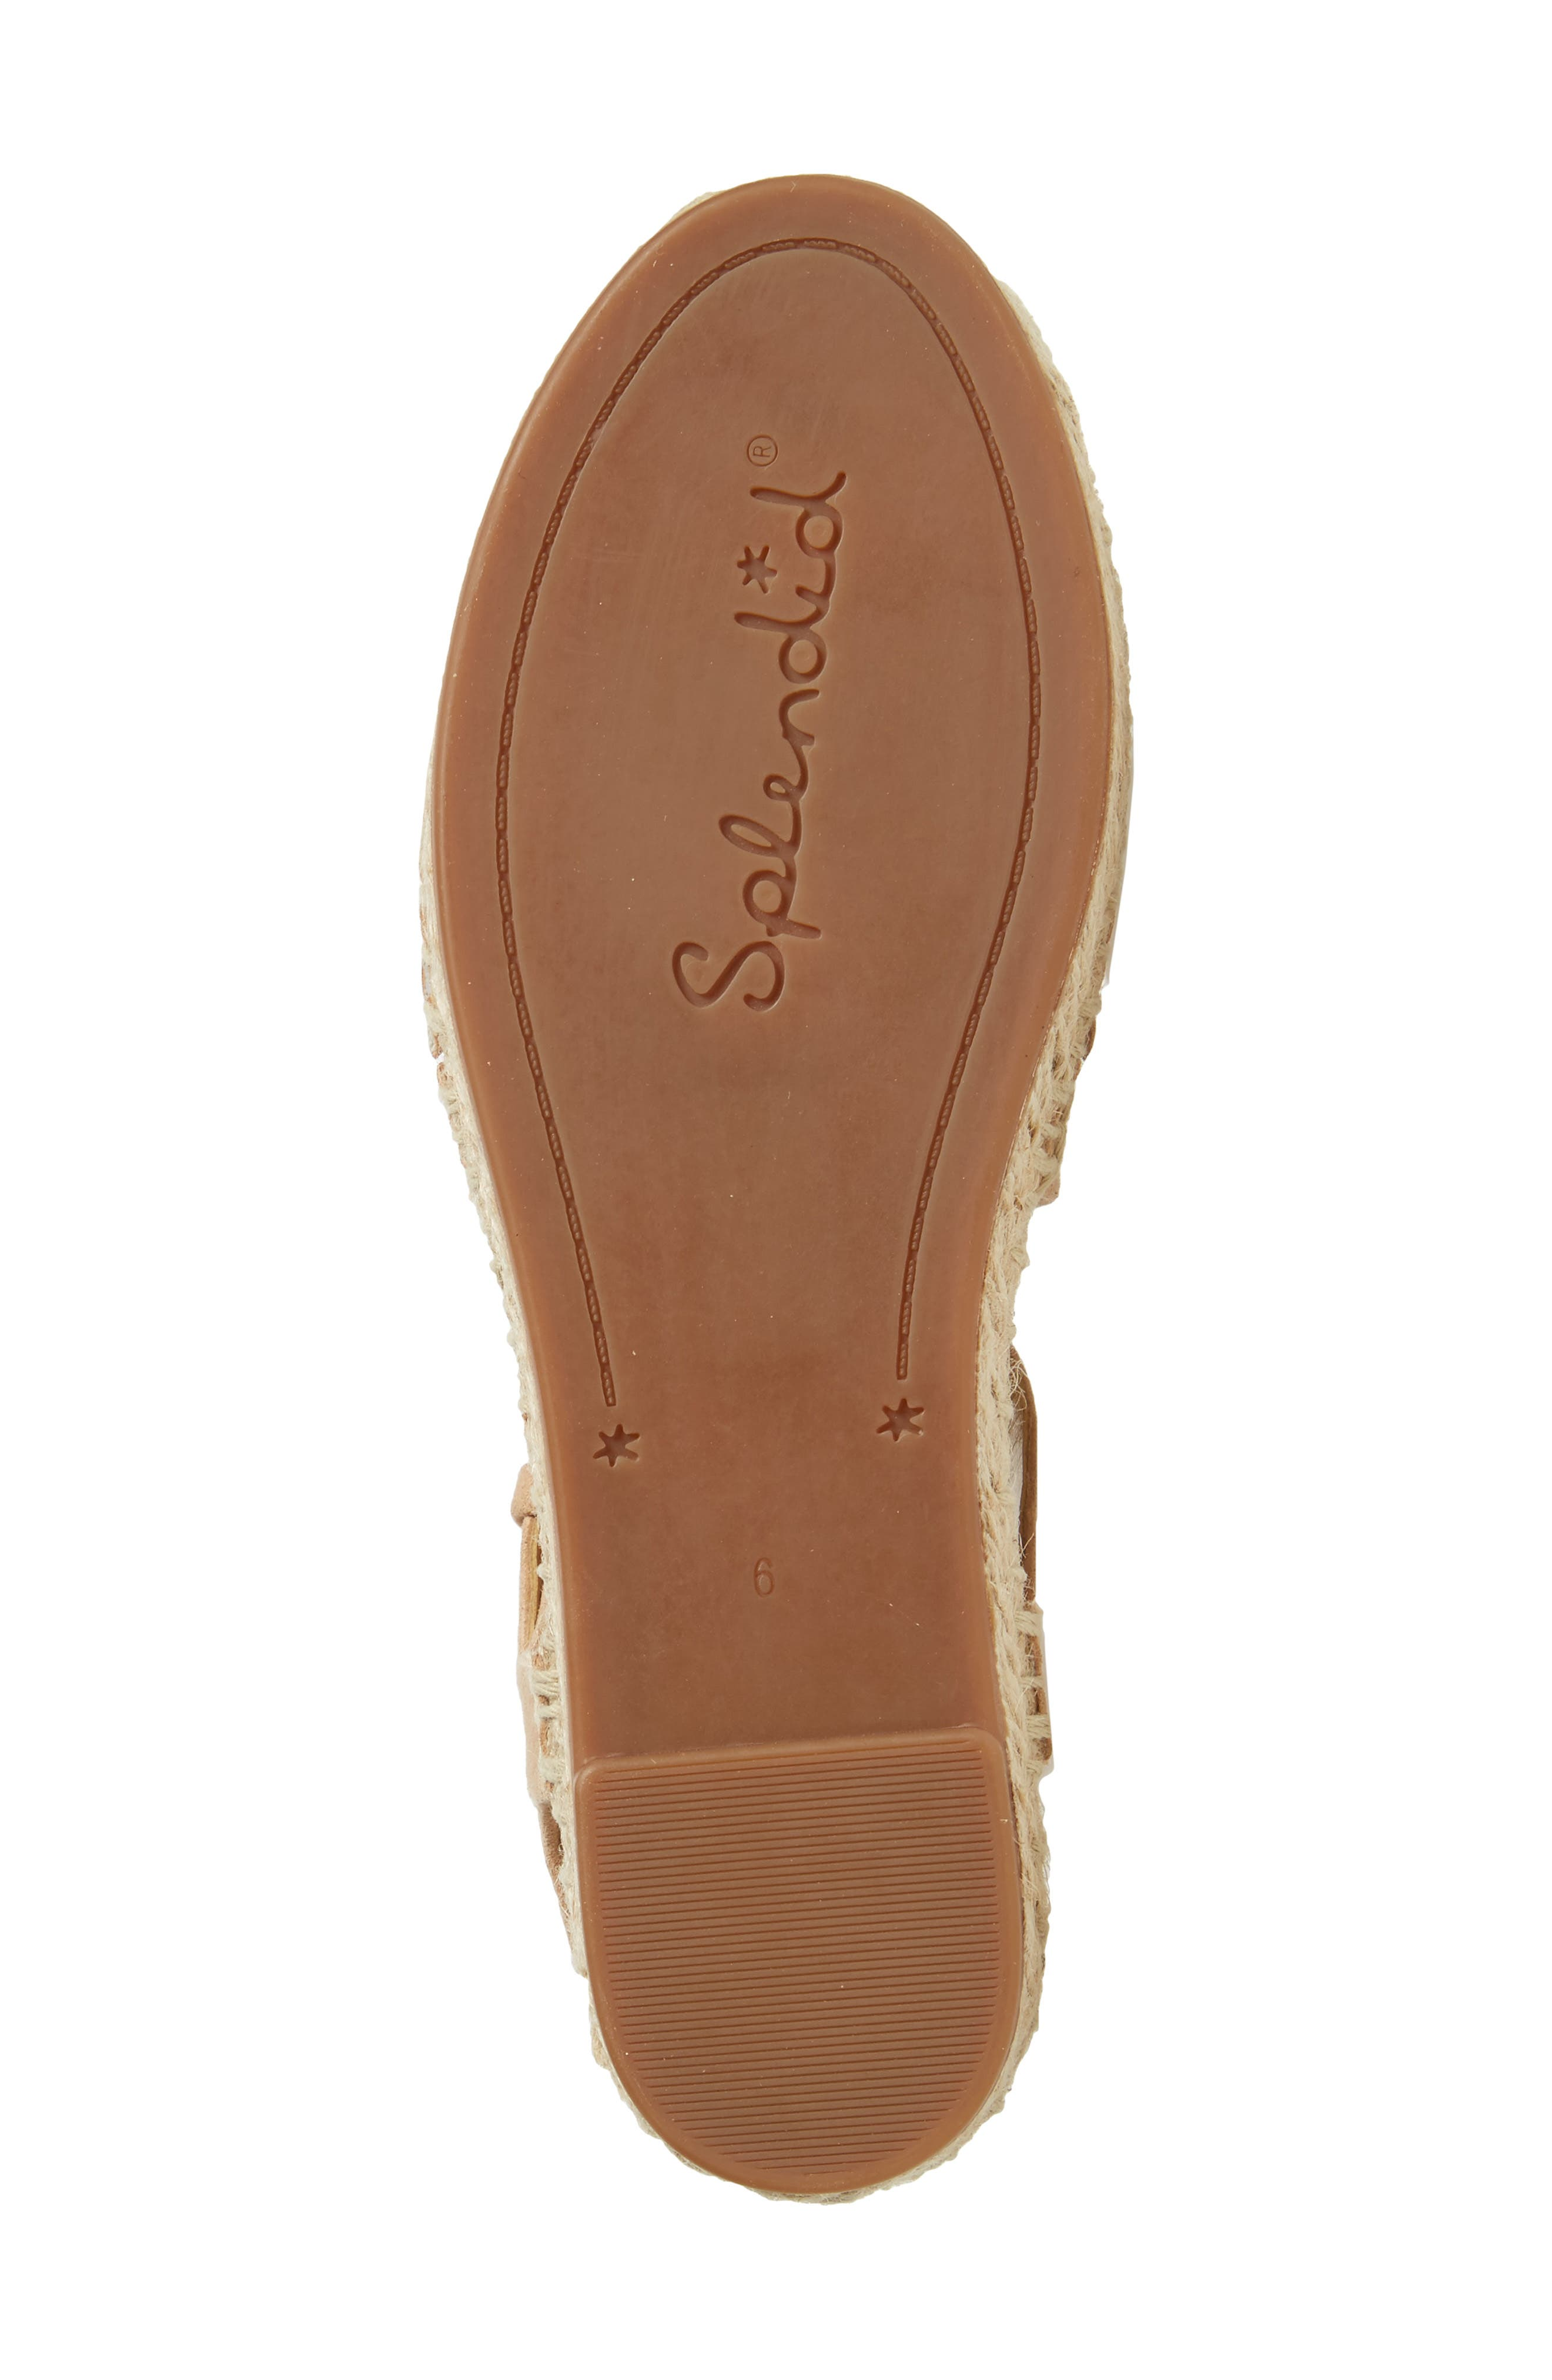 Foley Espadrille Flat,                             Alternate thumbnail 6, color,                             Nude Suede